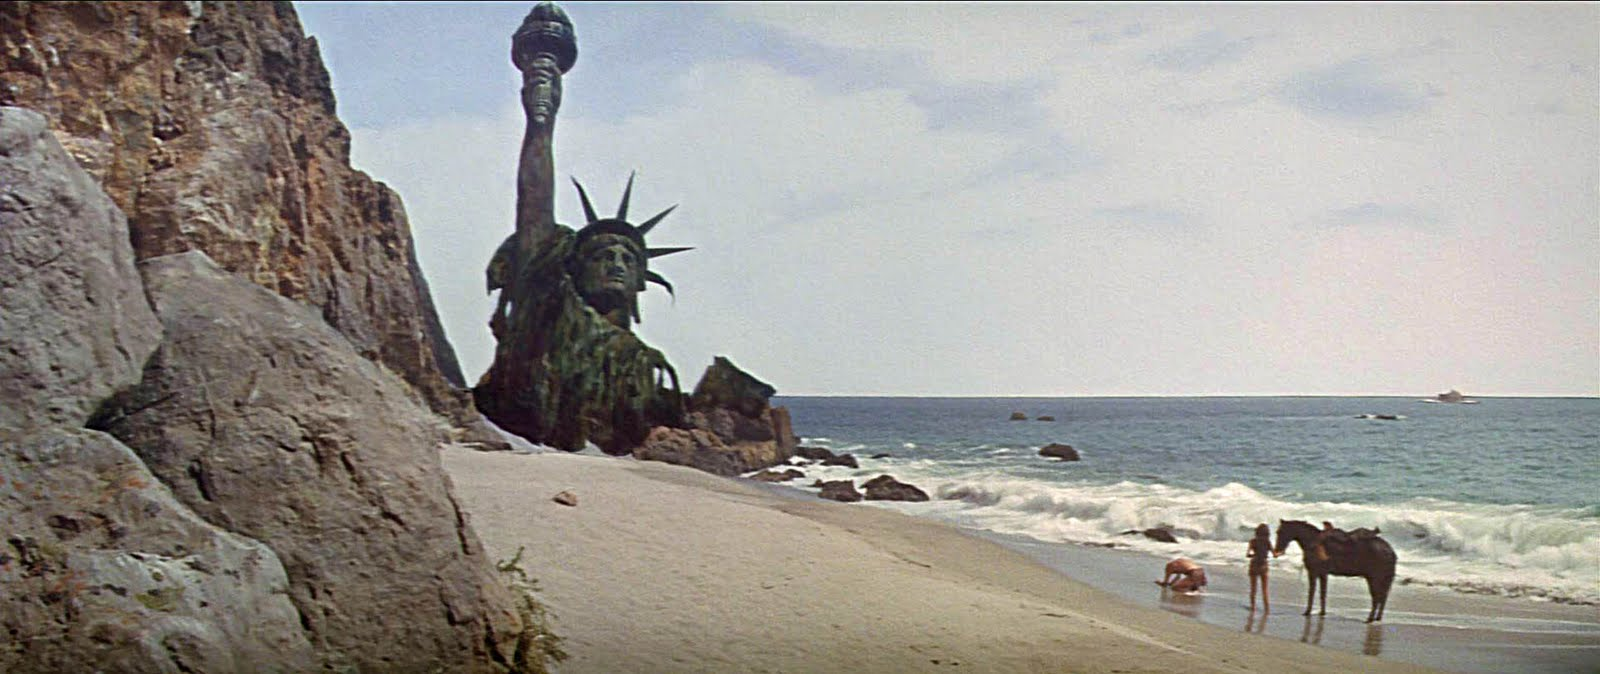 New York, NY could one day look like a scene from Planet of the Apes after decades of climate change